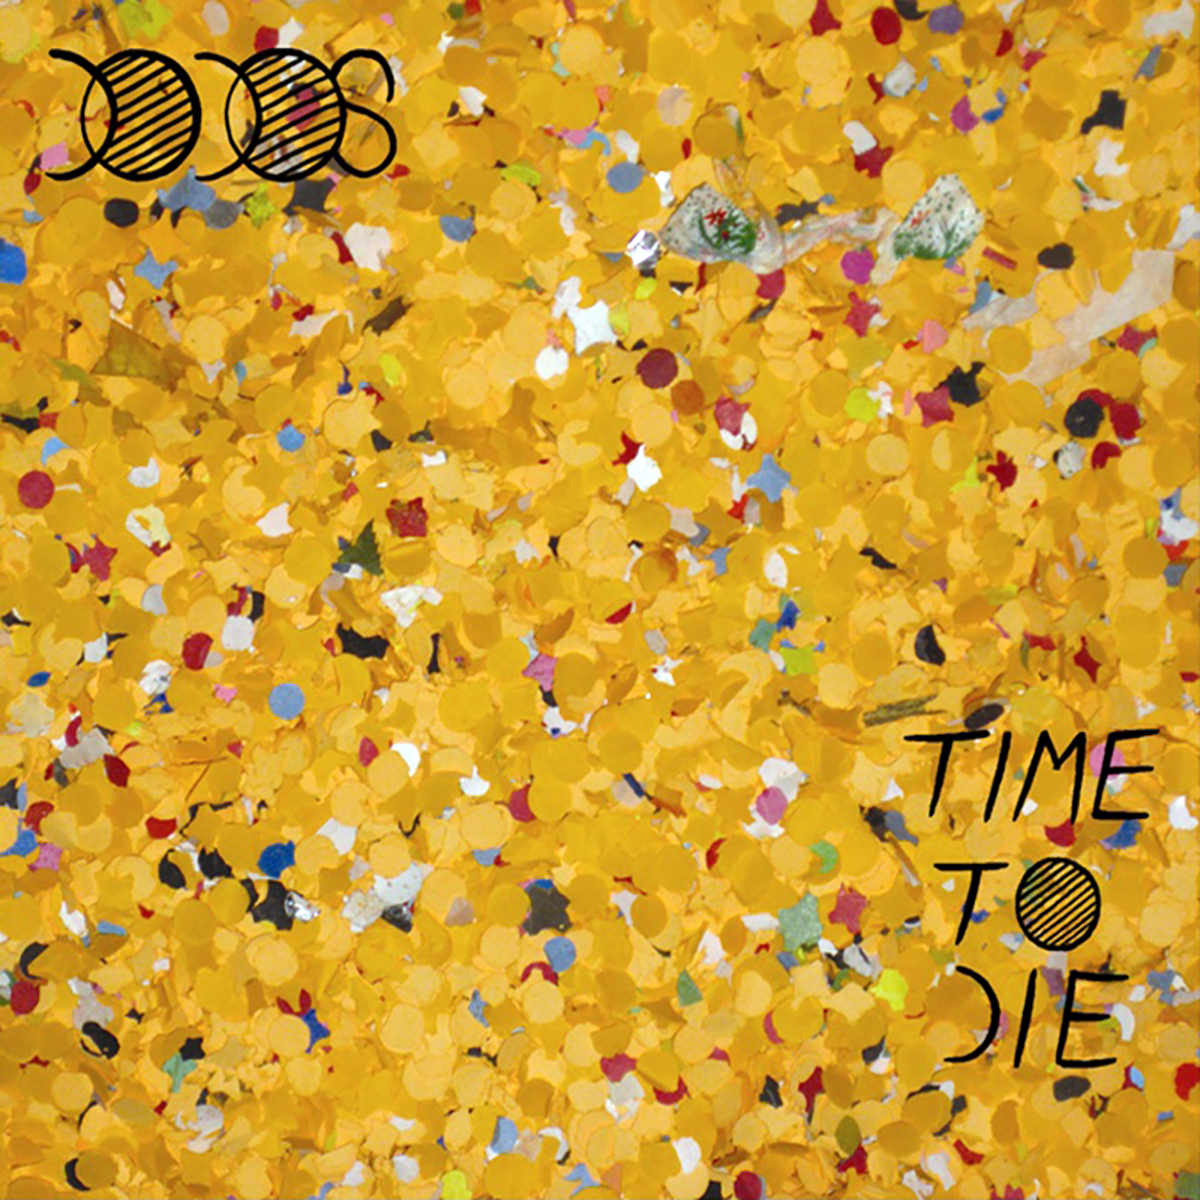 The Dodos, Time to Die